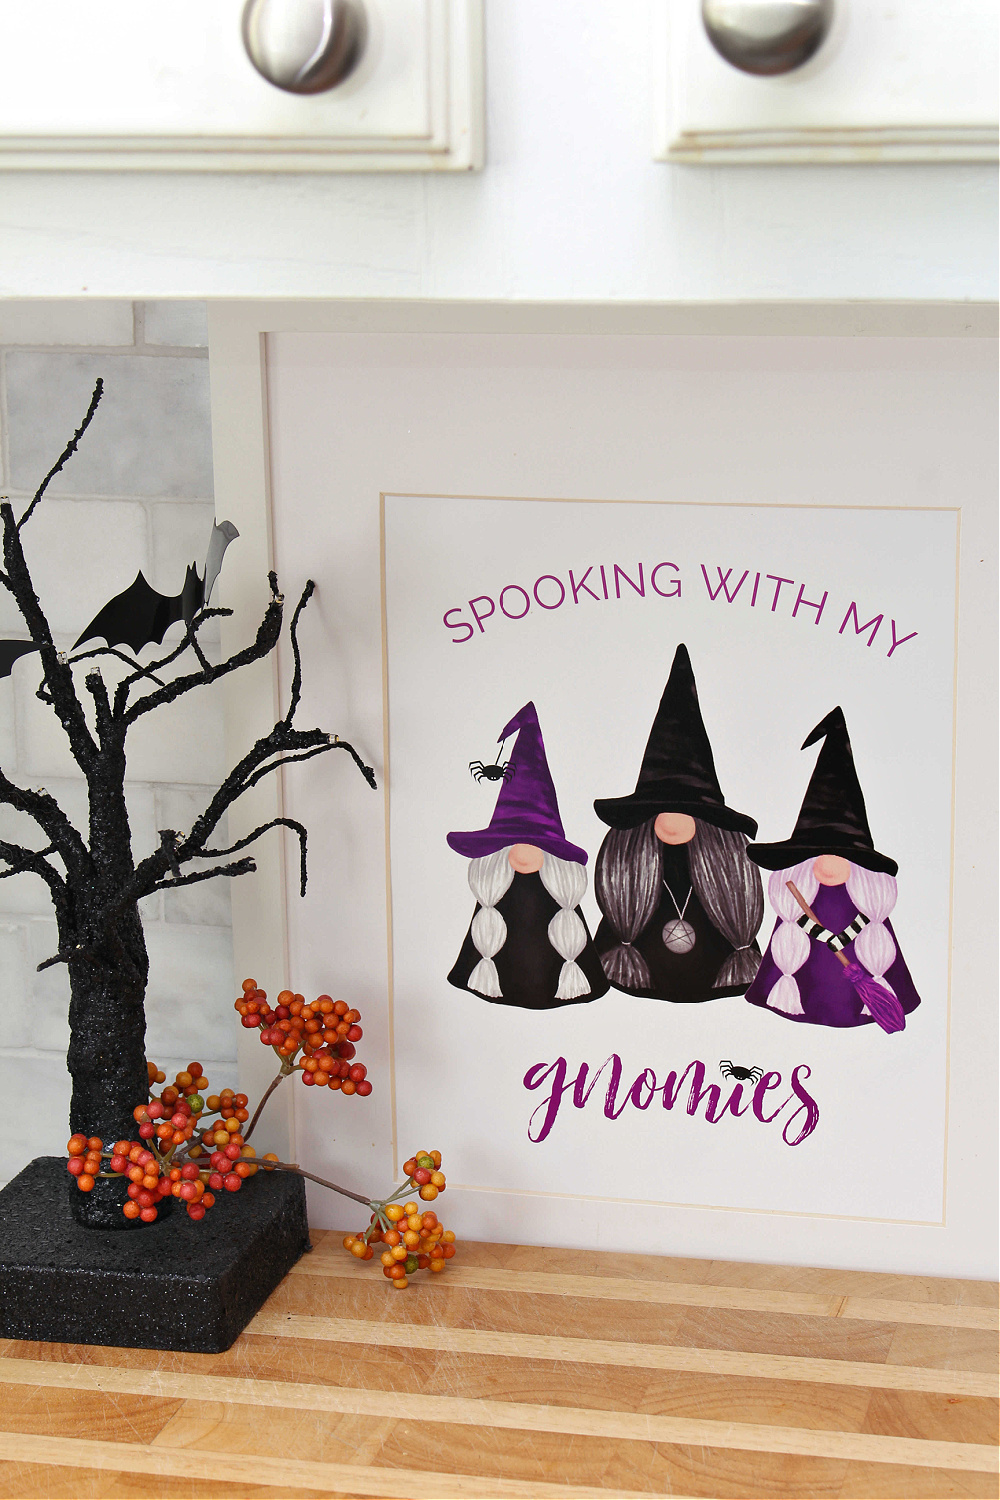 Spooking With My Gnomies free Halloween gnome printable.